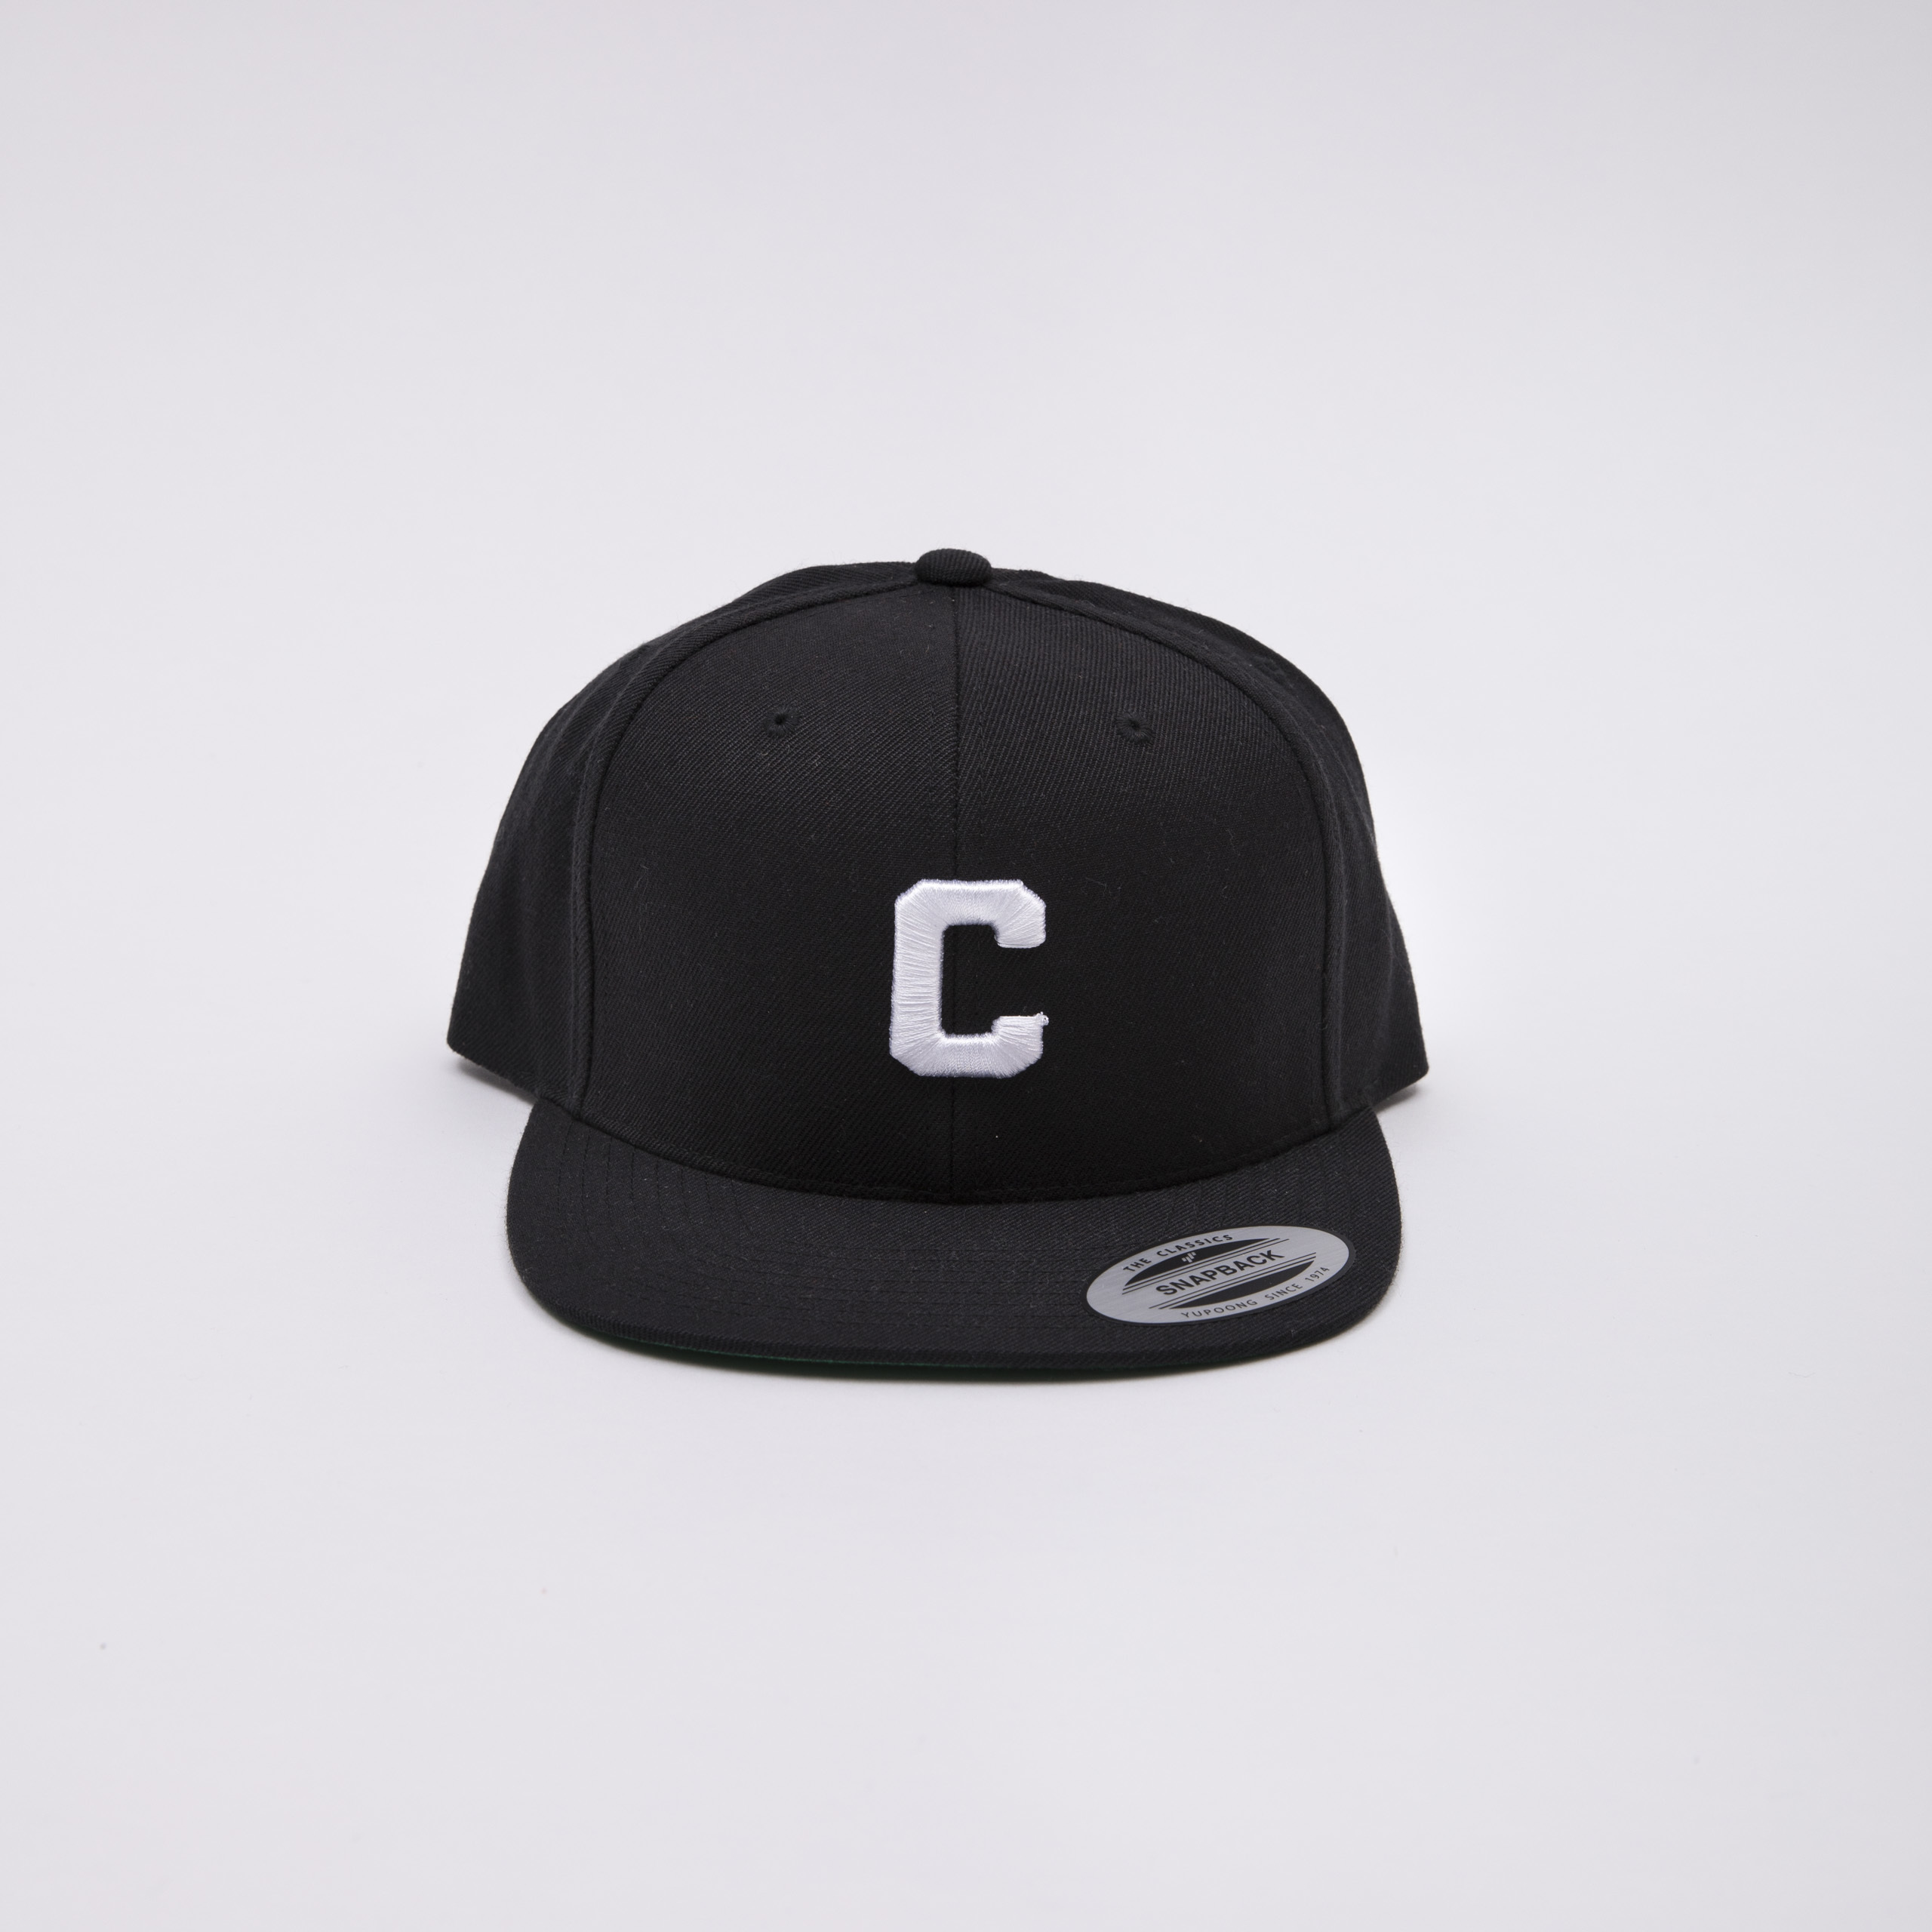 Crate Snap Back Cap Black